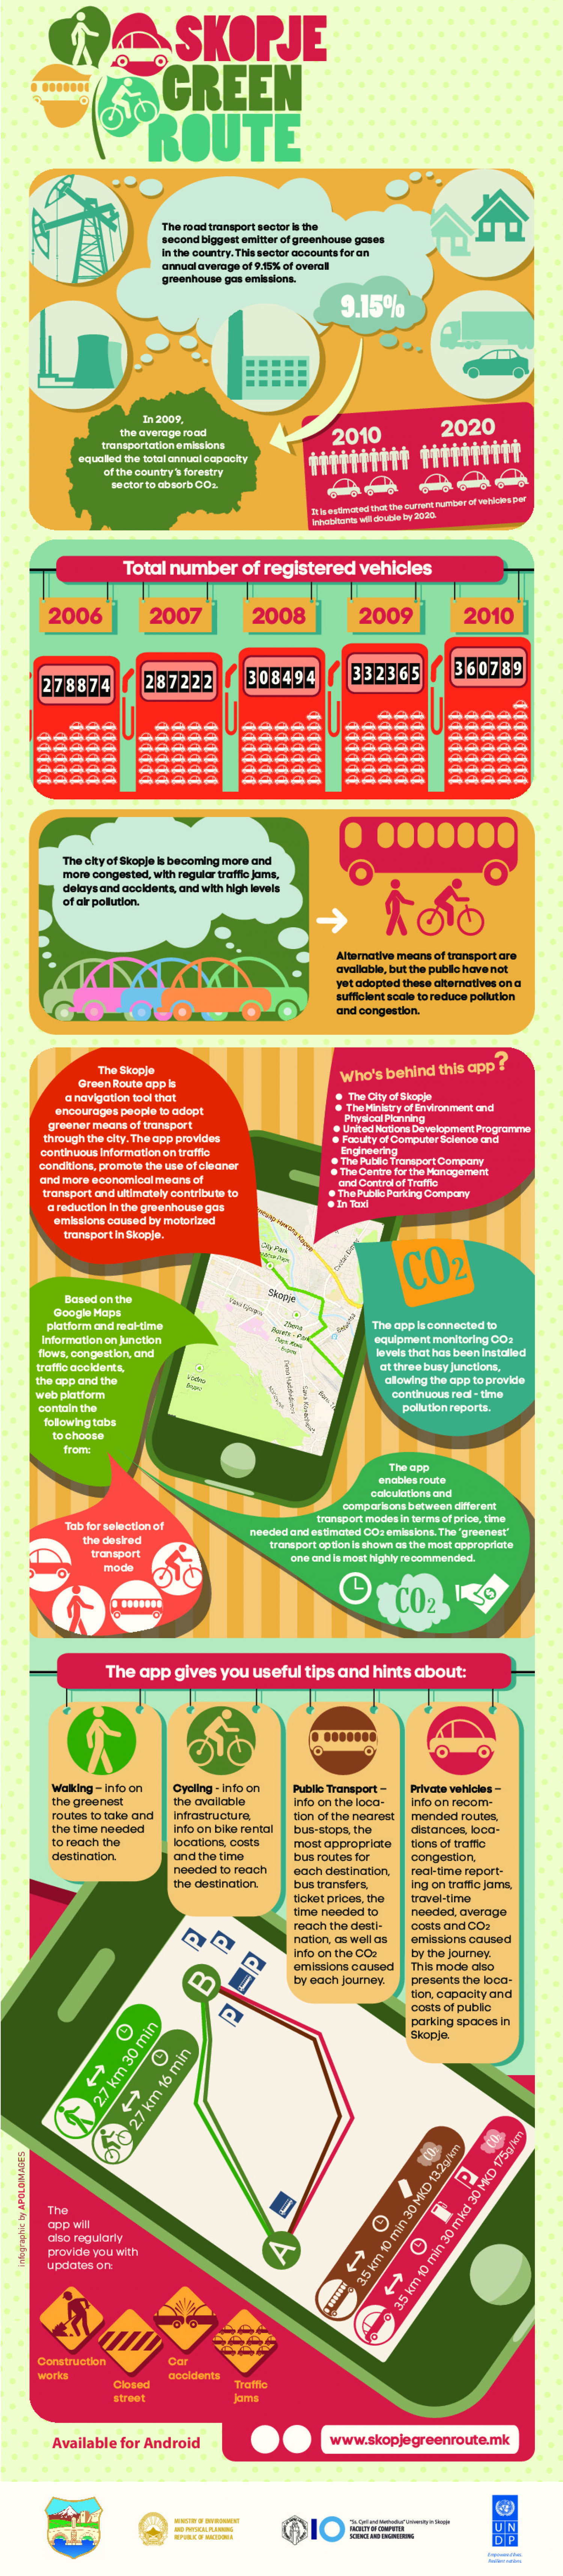 Skopje Green Route Infographic